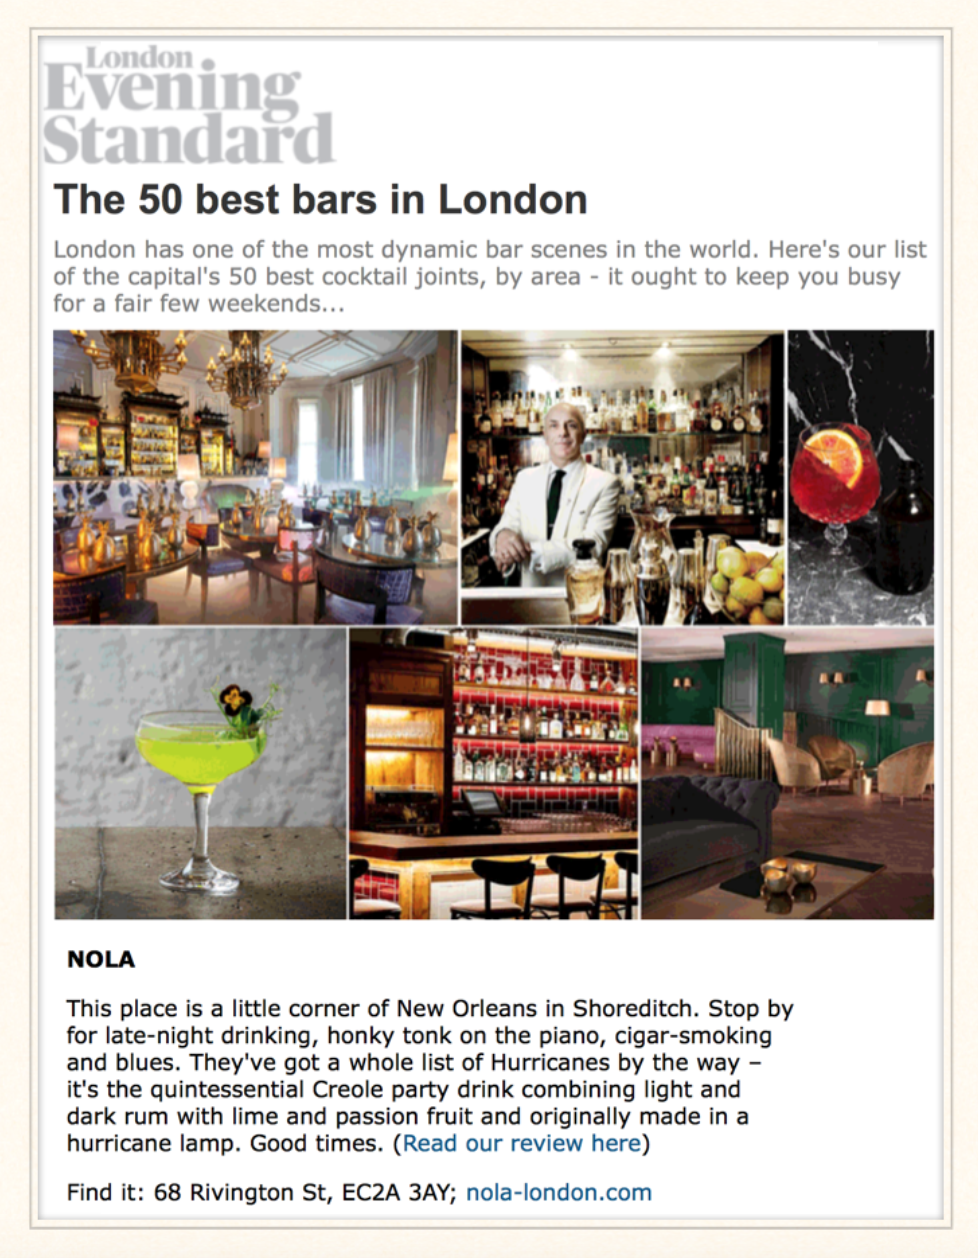 London Evening Standard: The 50 Best Bars in London, 2015